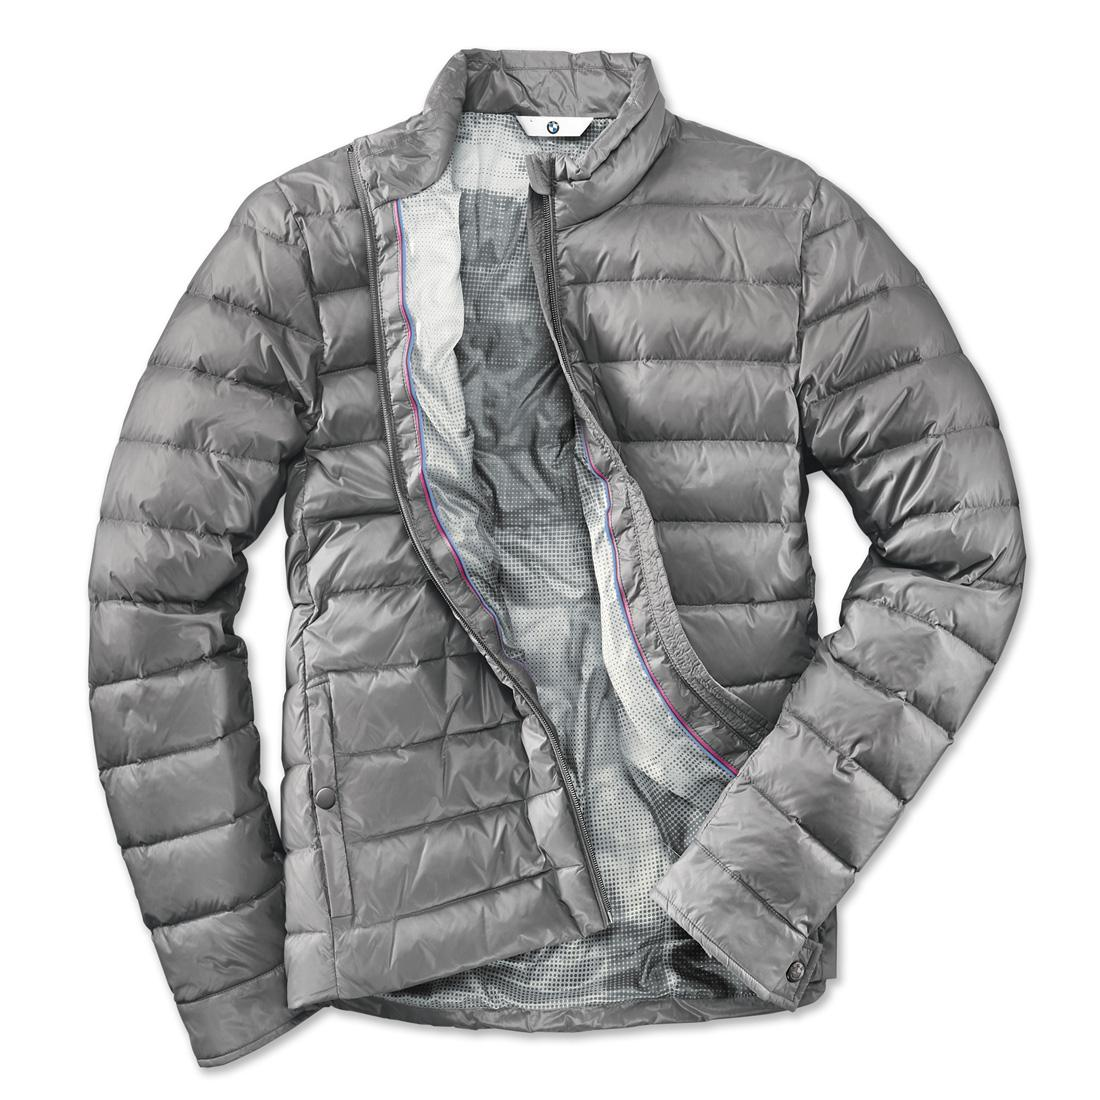 ShopBMWUSA.com: BMW LIGHTWEIGHT DOWN JACKET MEN'S GREY